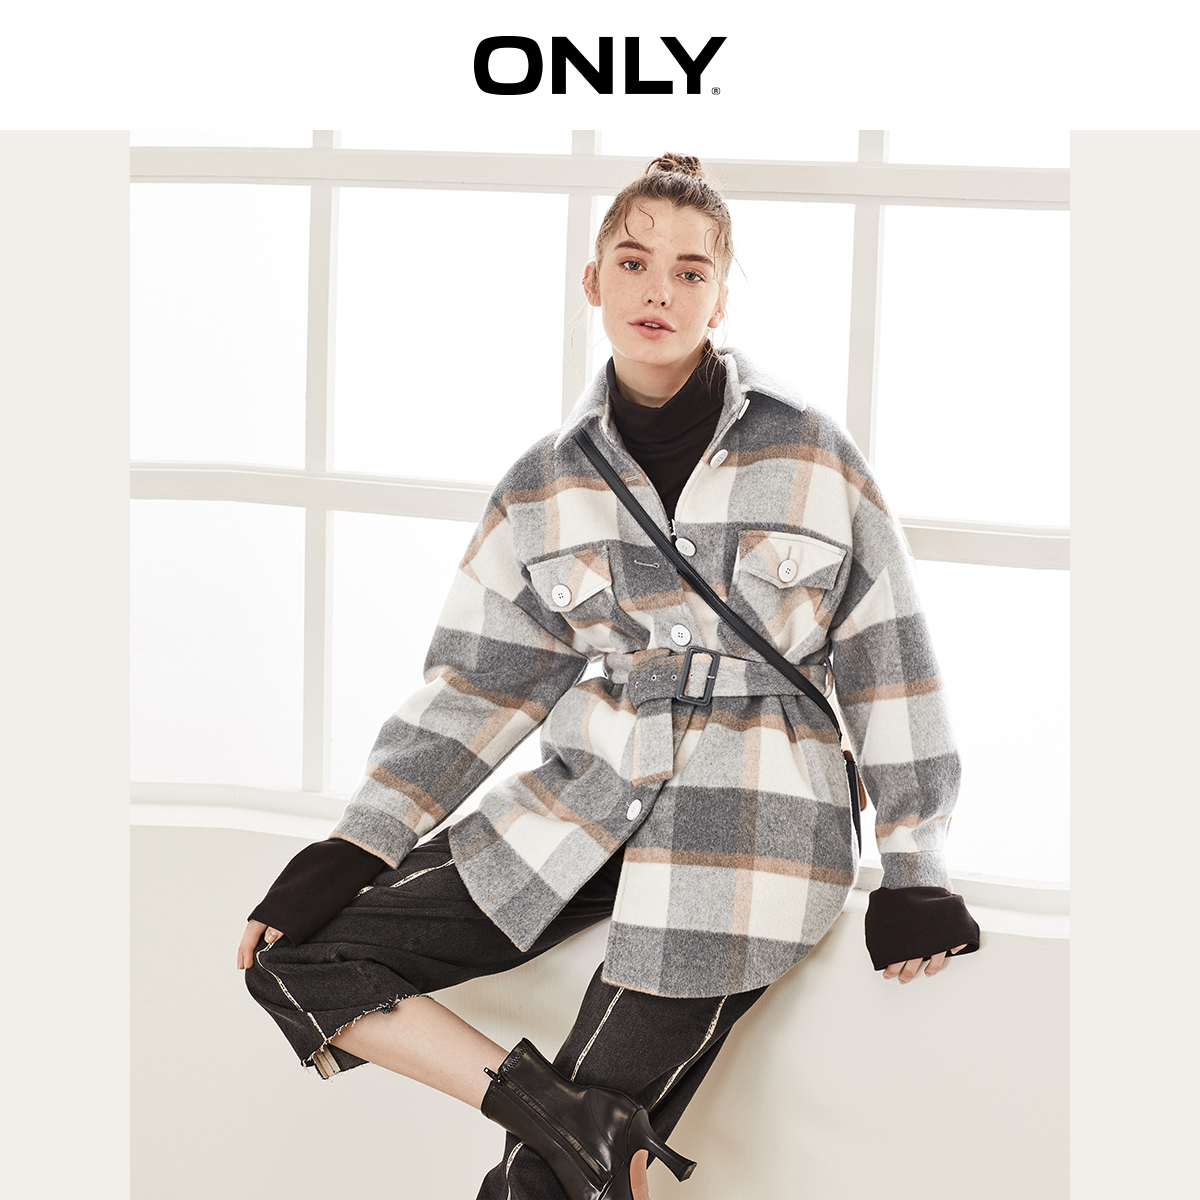 ONLY  Autumn Winter Women's Checked Woolen Coat | 11936T519